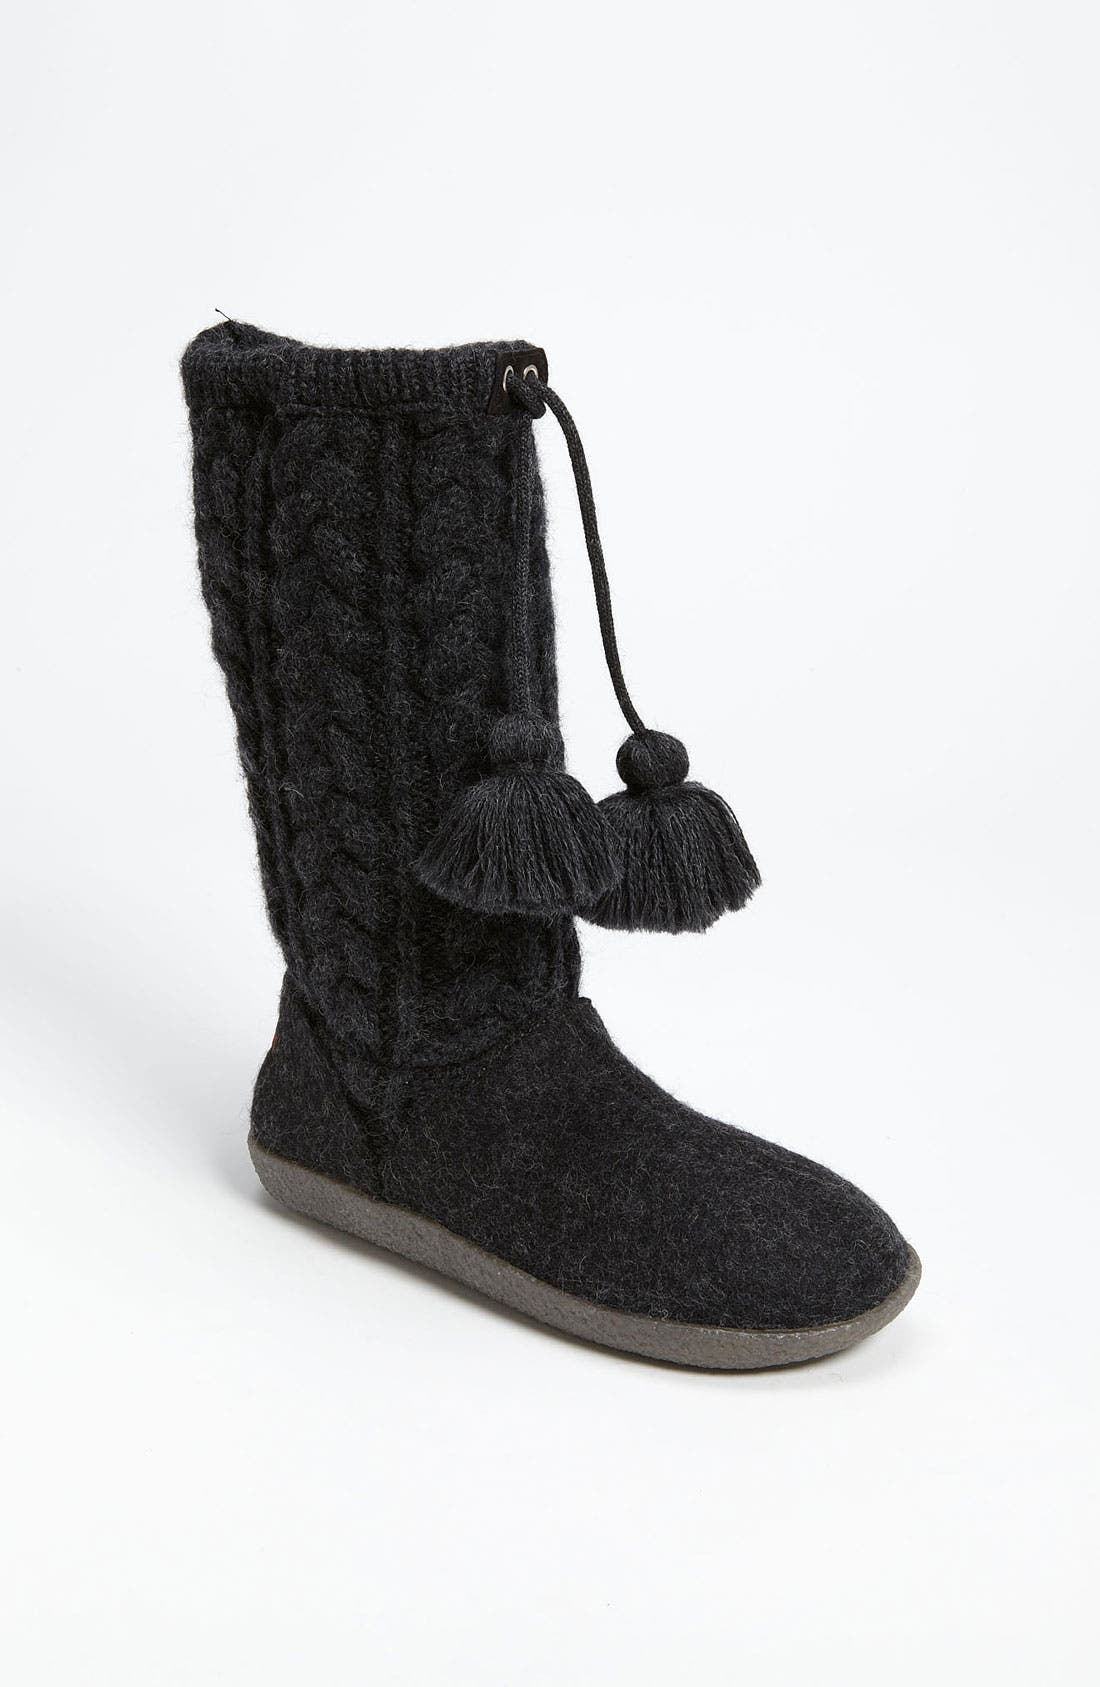 Main Image - Giesswein 'Bruck Lodge Boot' Slipper